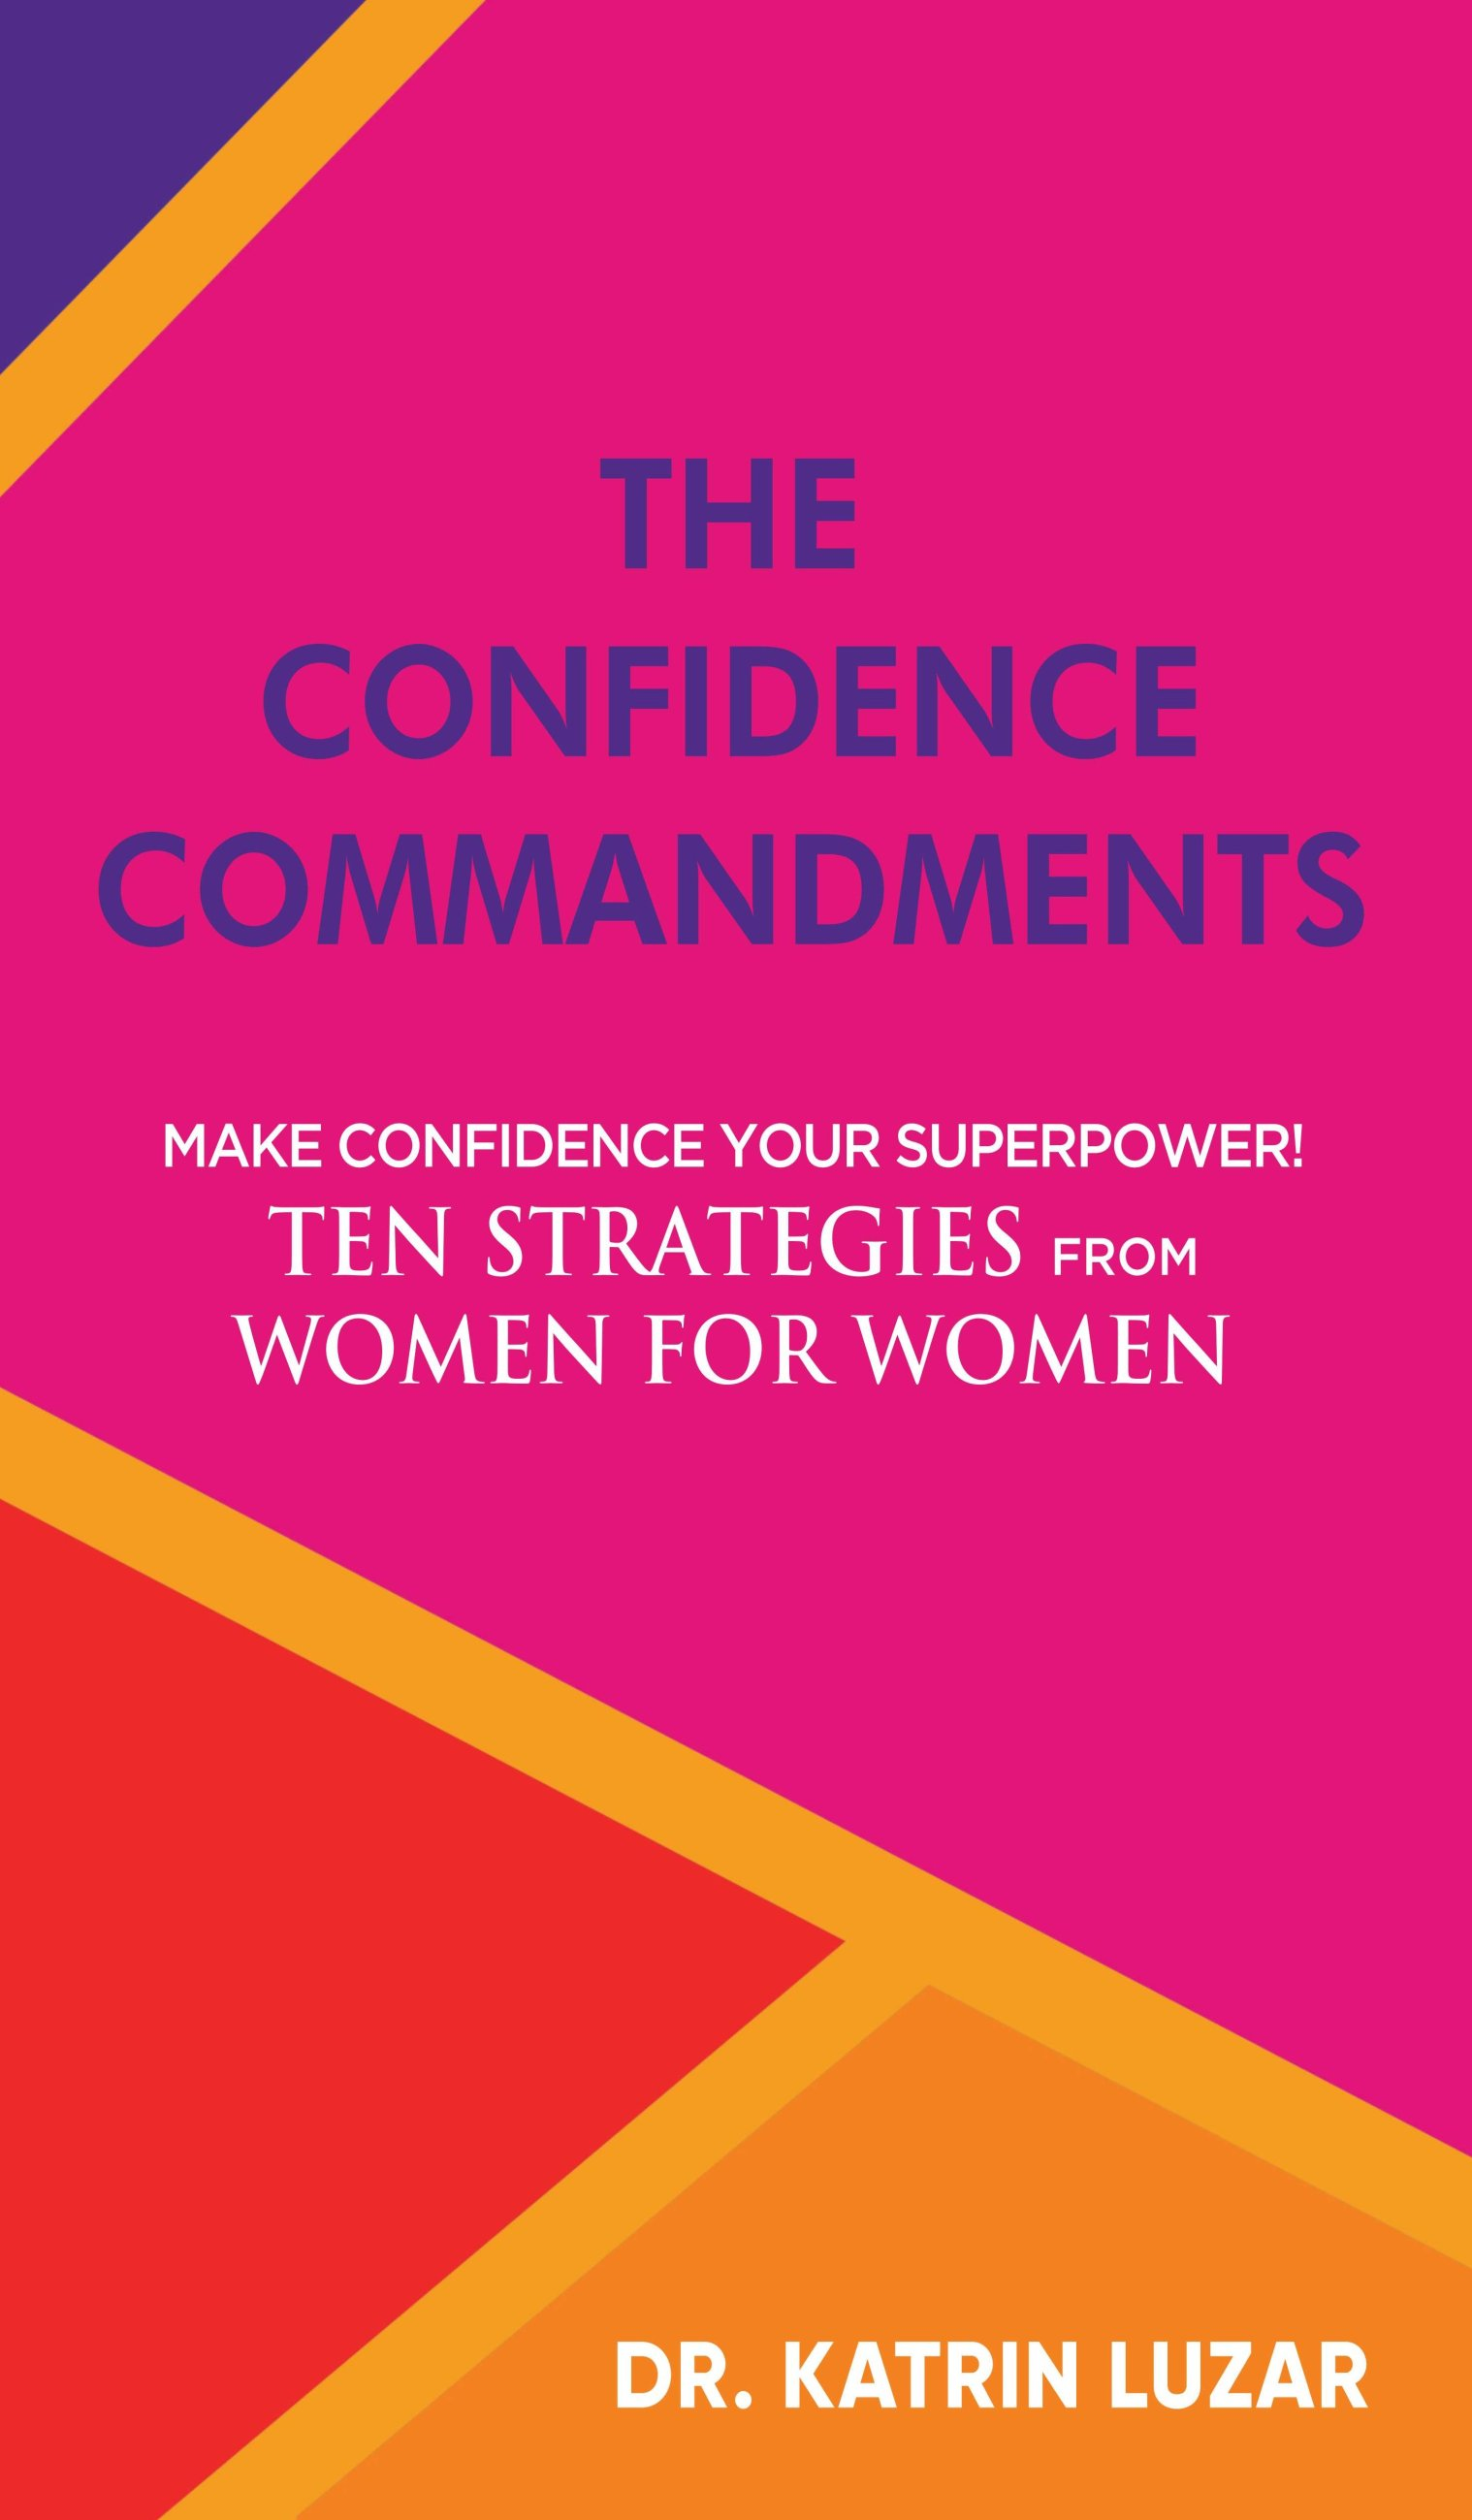 The Confidence Commandments - Ten strategies from women for women